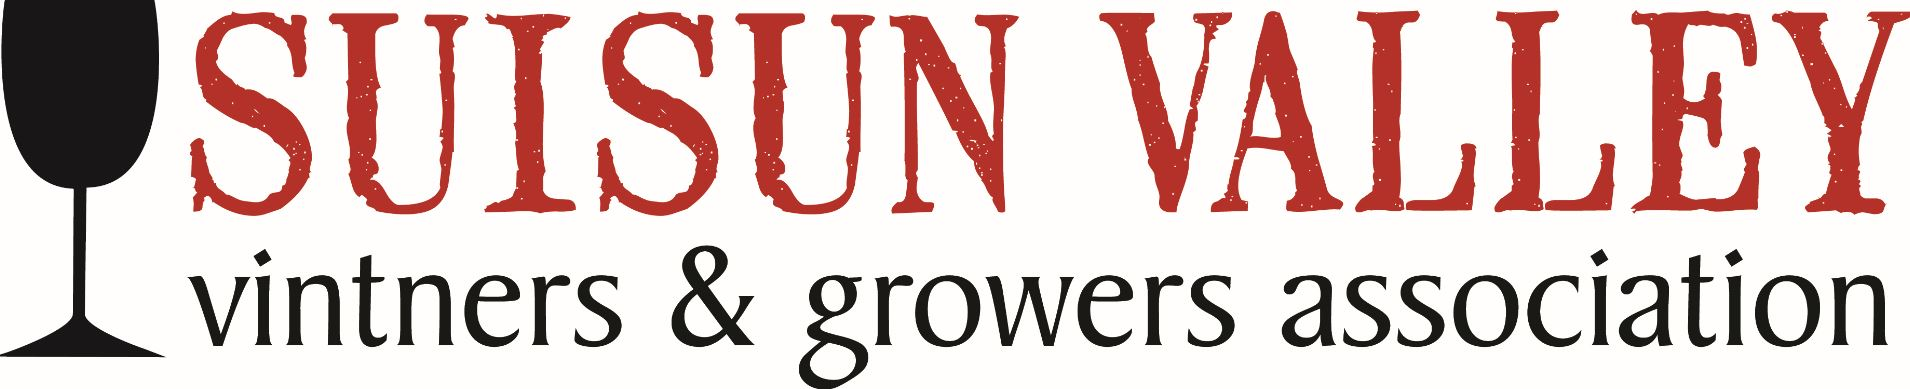 Suisun Valley Vintners & Growers Association are a big piece for Suisun Valley Wineries